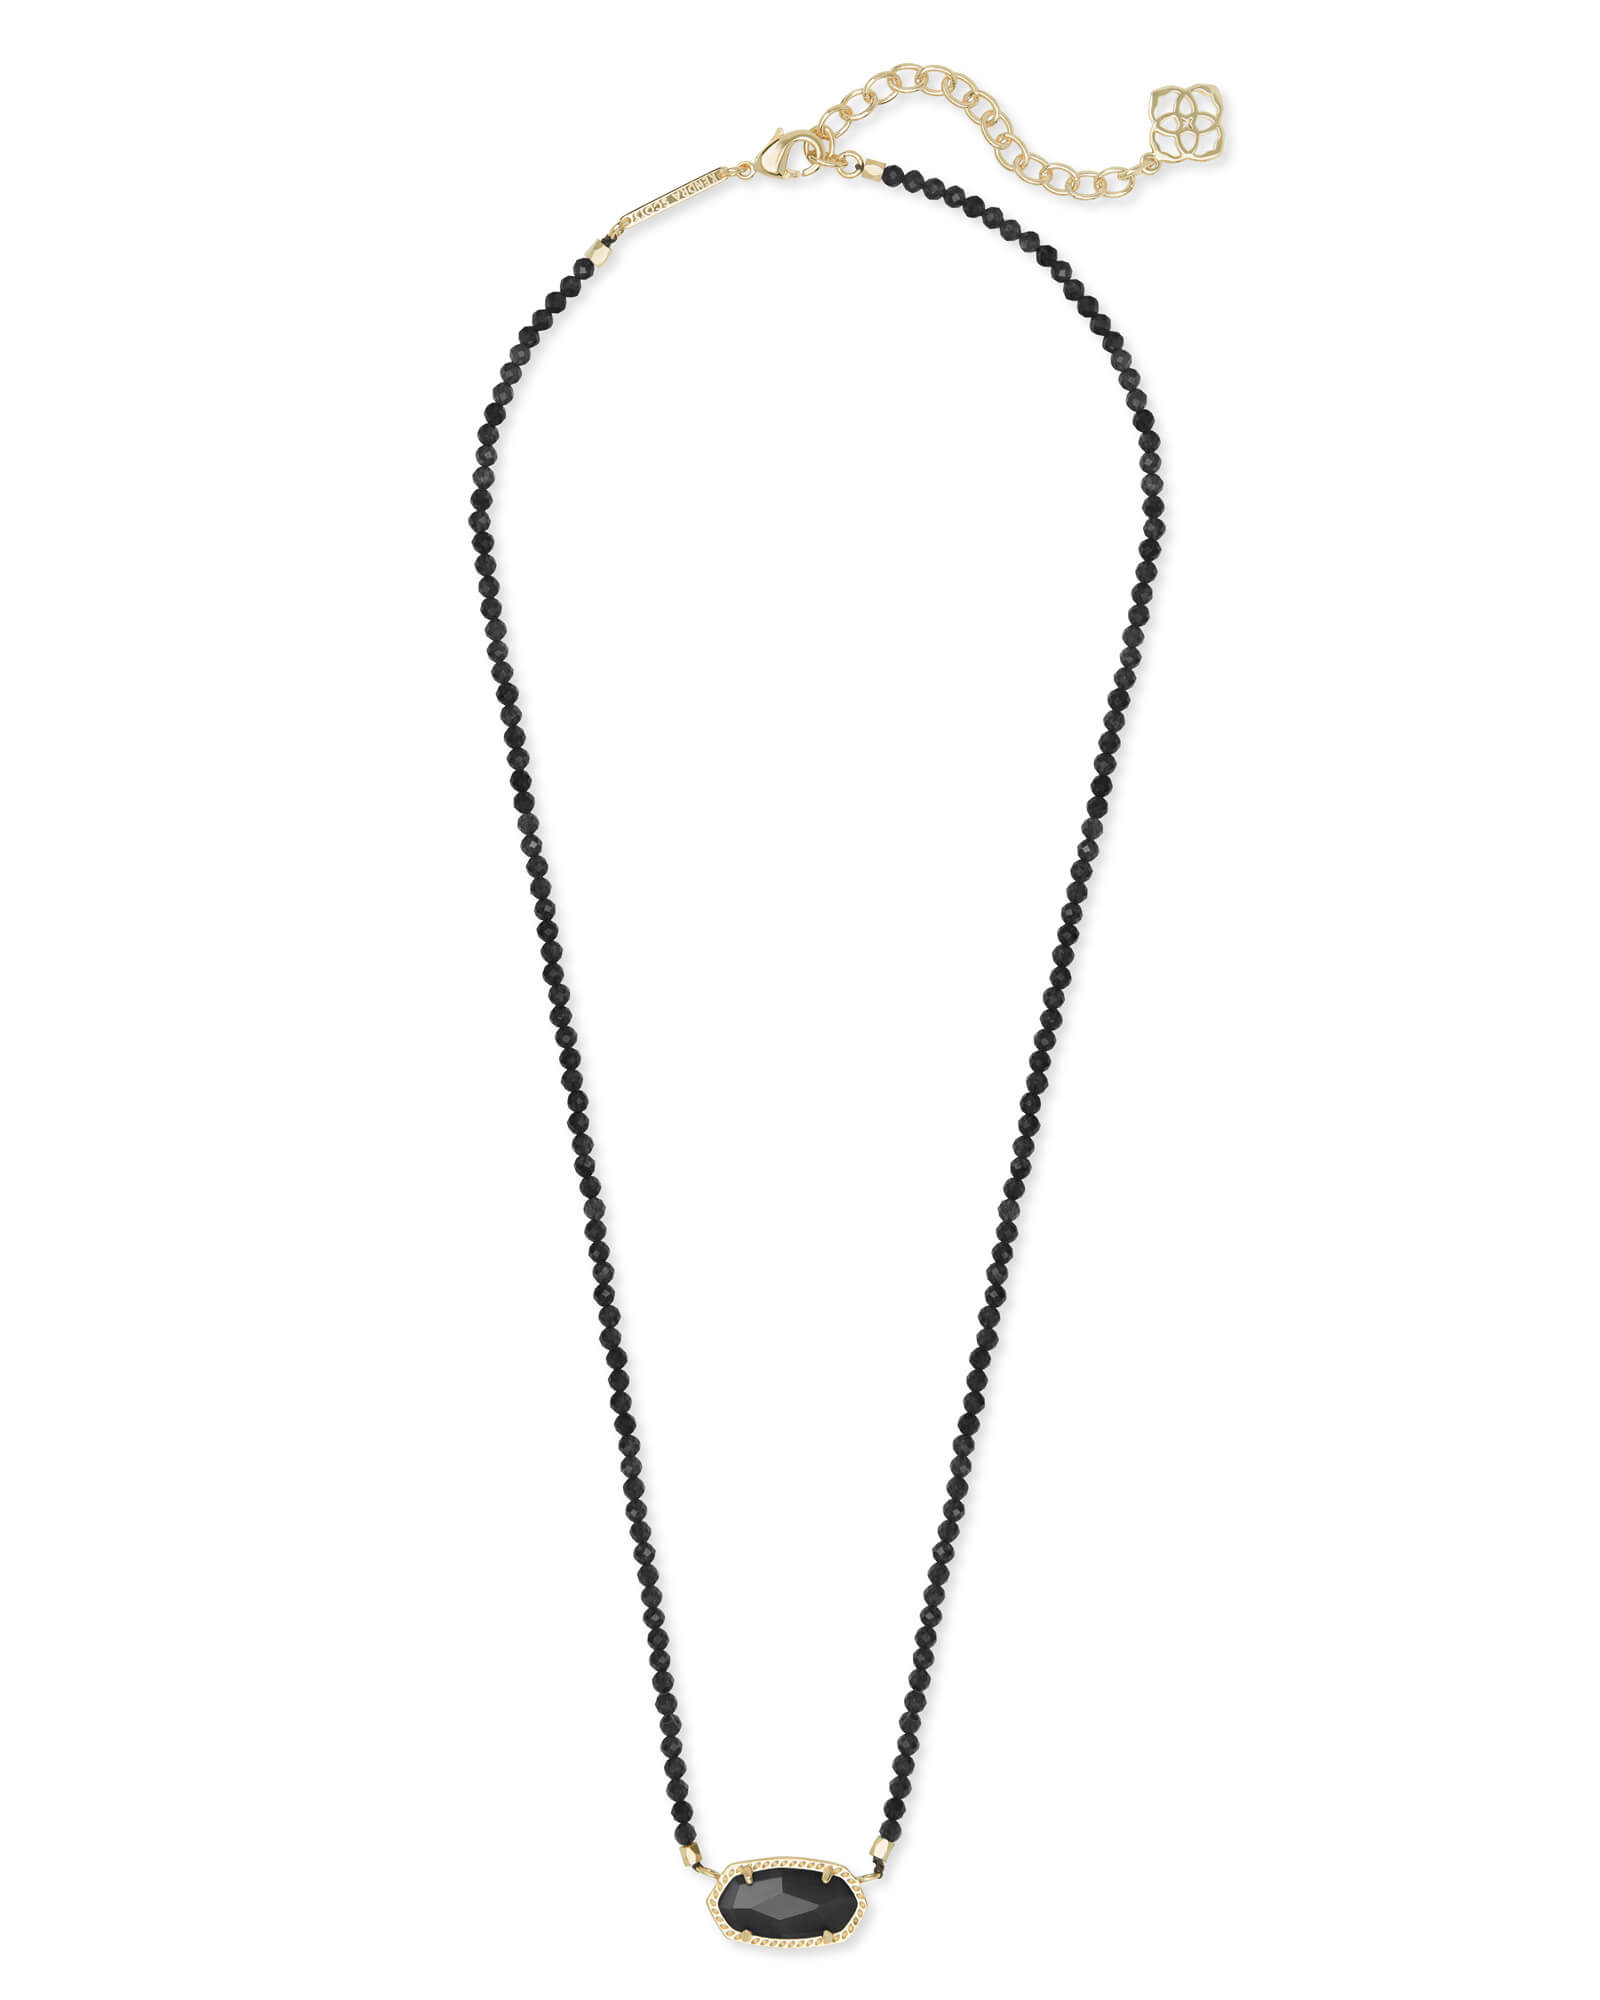 Elisa Gold Beaded Pendant Necklace | Kendra Scott Pertaining To 2020 Beaded Chain Necklaces (Gallery 20 of 25)